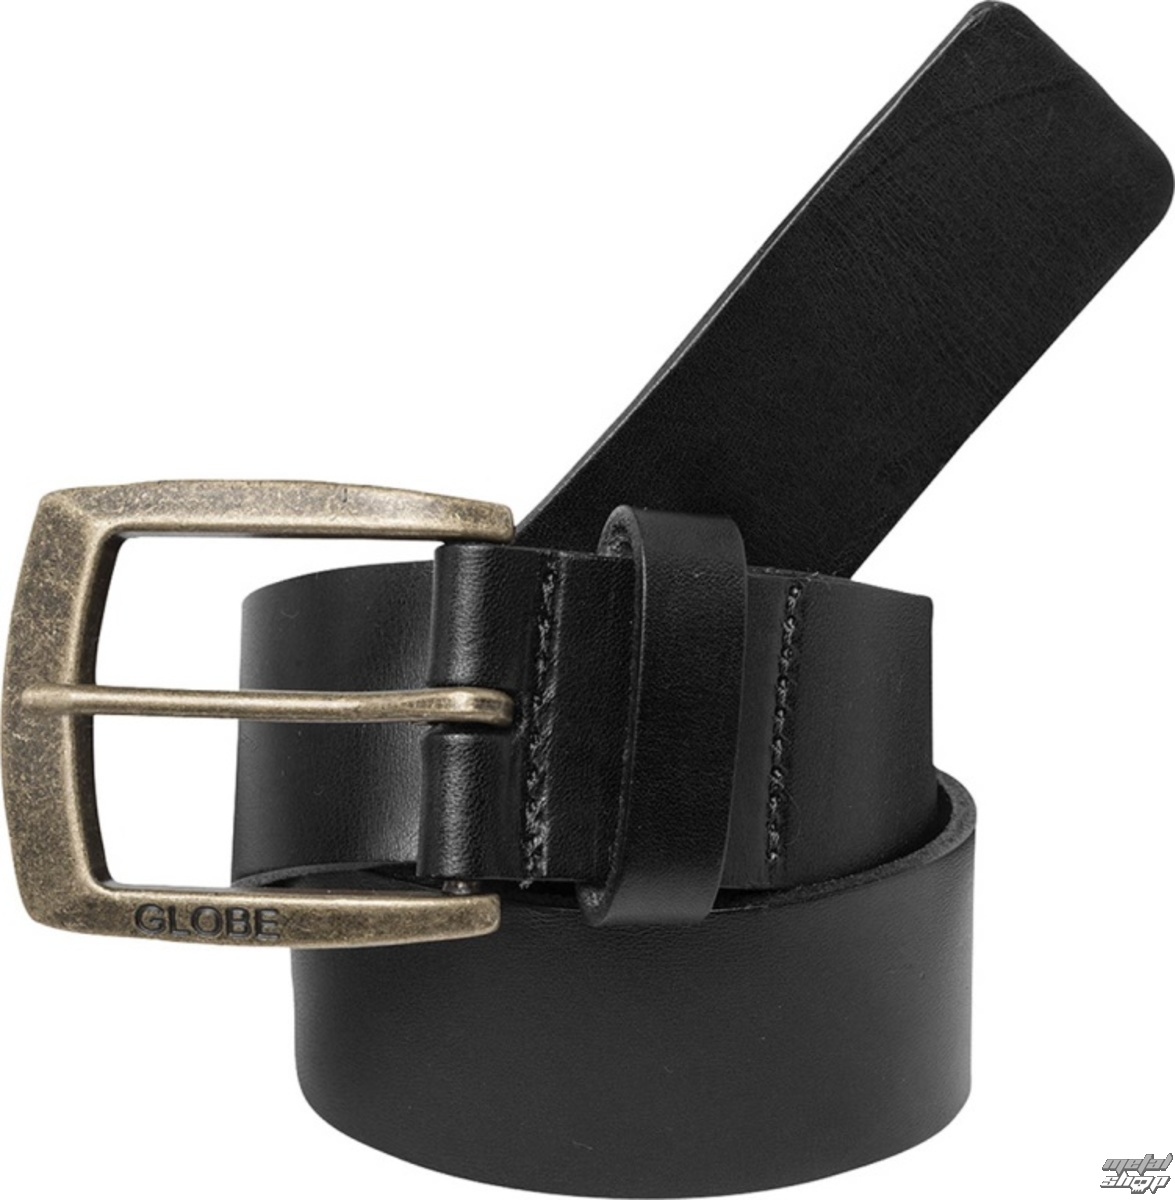 pásek GLOBE - Supply - Black - GB71439032-BLK SM